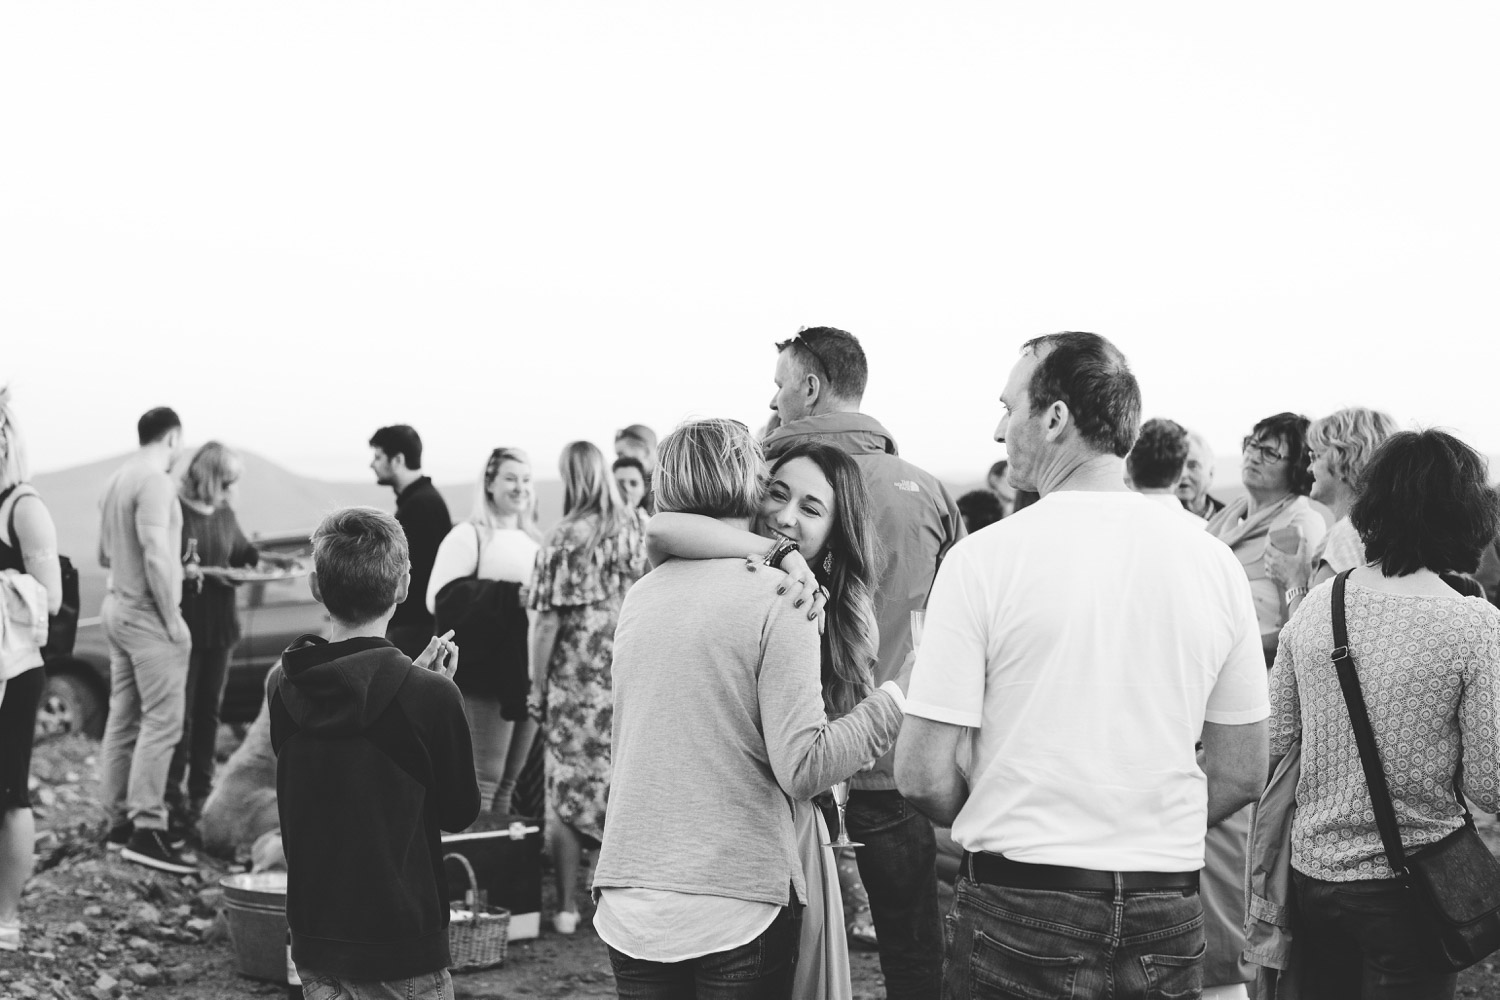 greyton-wedding-western-cape-photographer-river-bed-proteas-south-african22.jpg